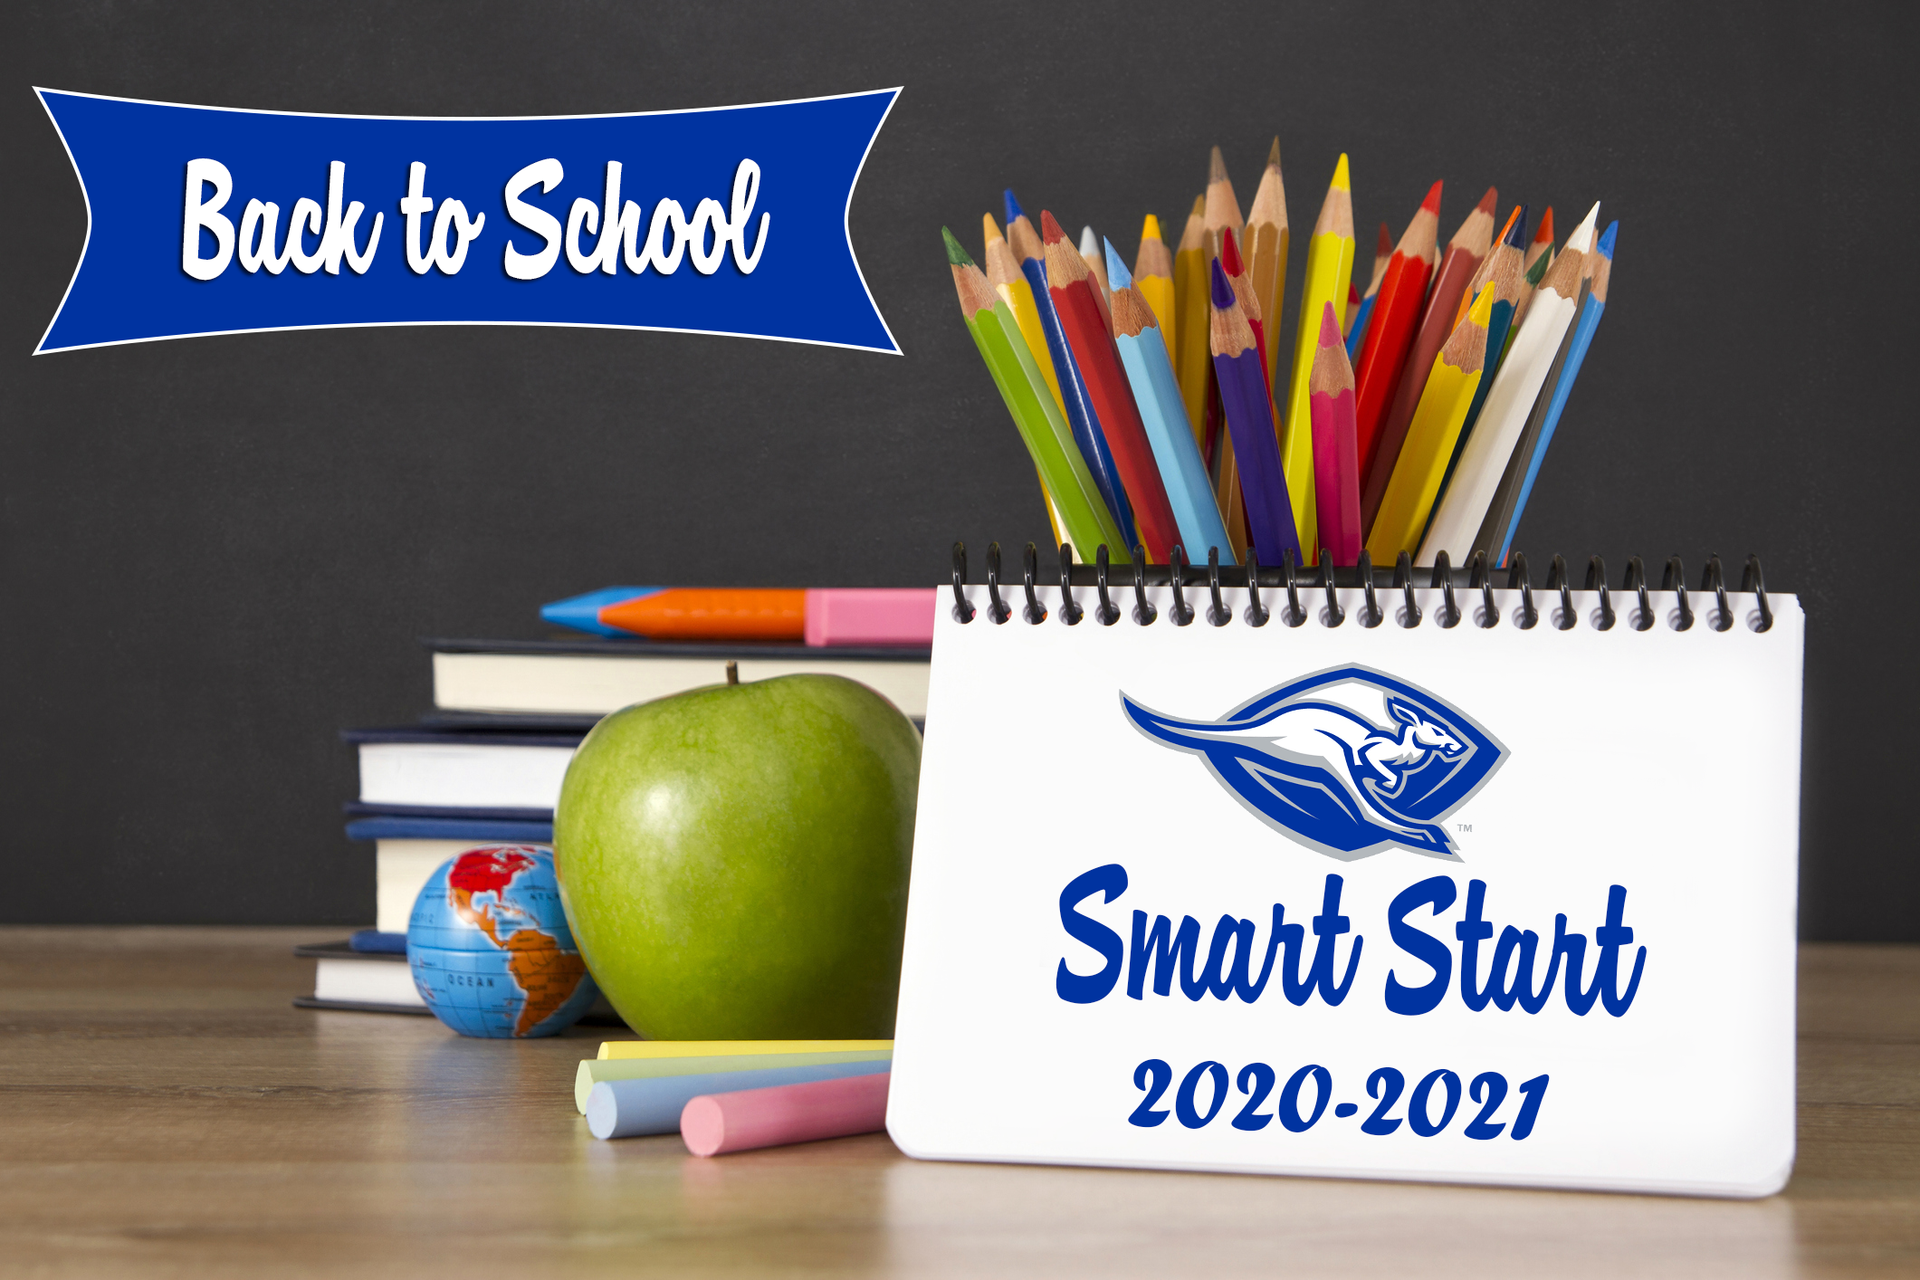 Back to school image with books, an apple, colored pencils, chalk, and a spiral index card with back to school wording.